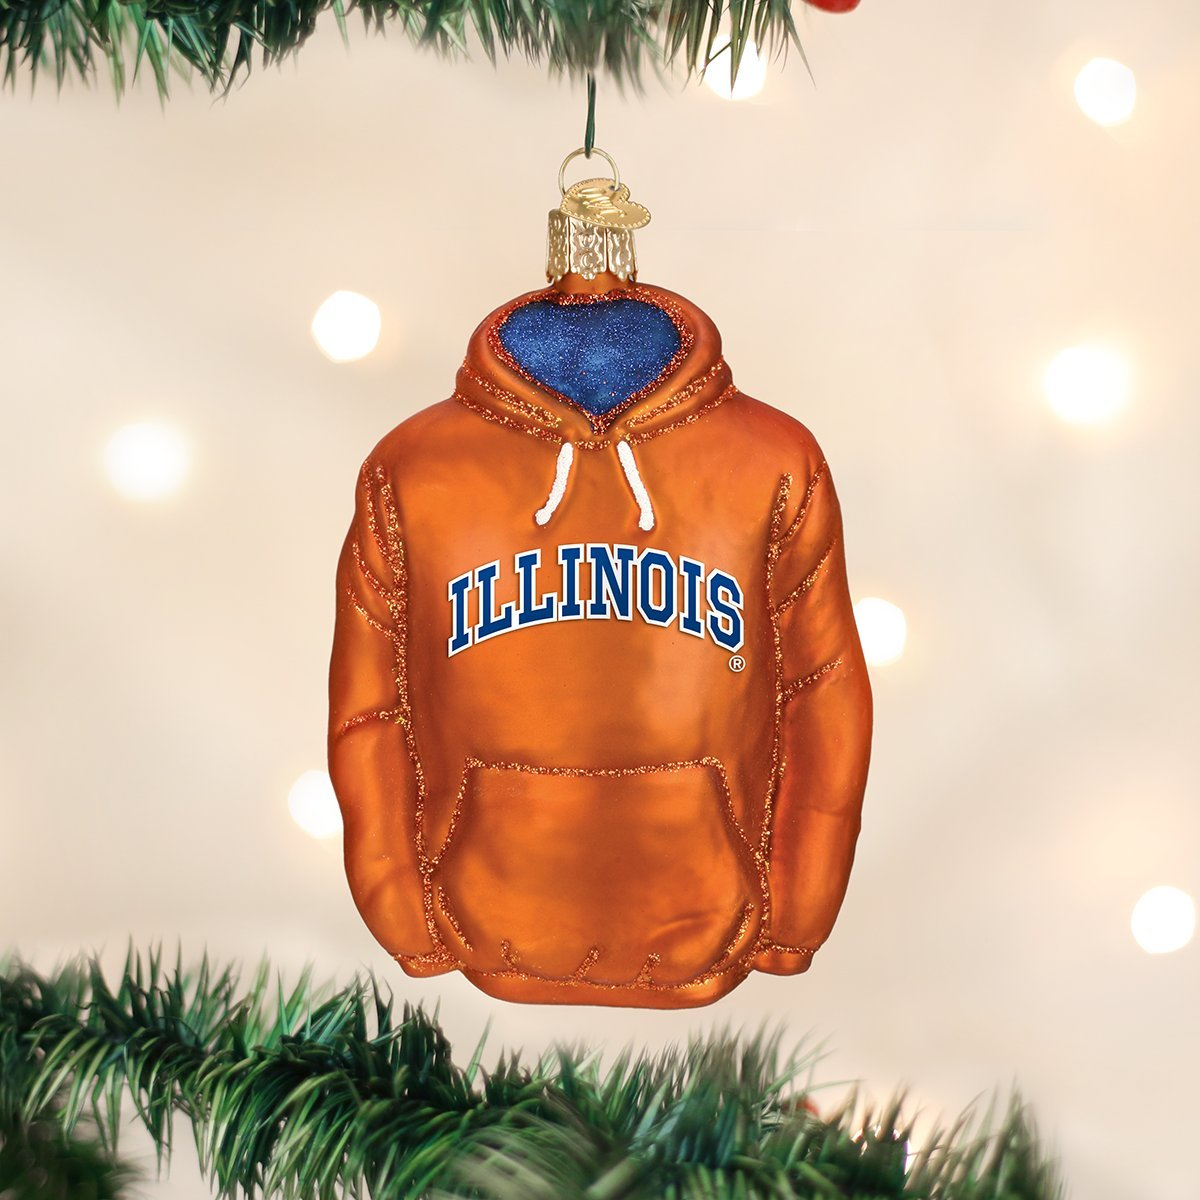 Illinois Hoodie Glass Blown Ornaments for Christmas Tree Old World Christmas Ornaments